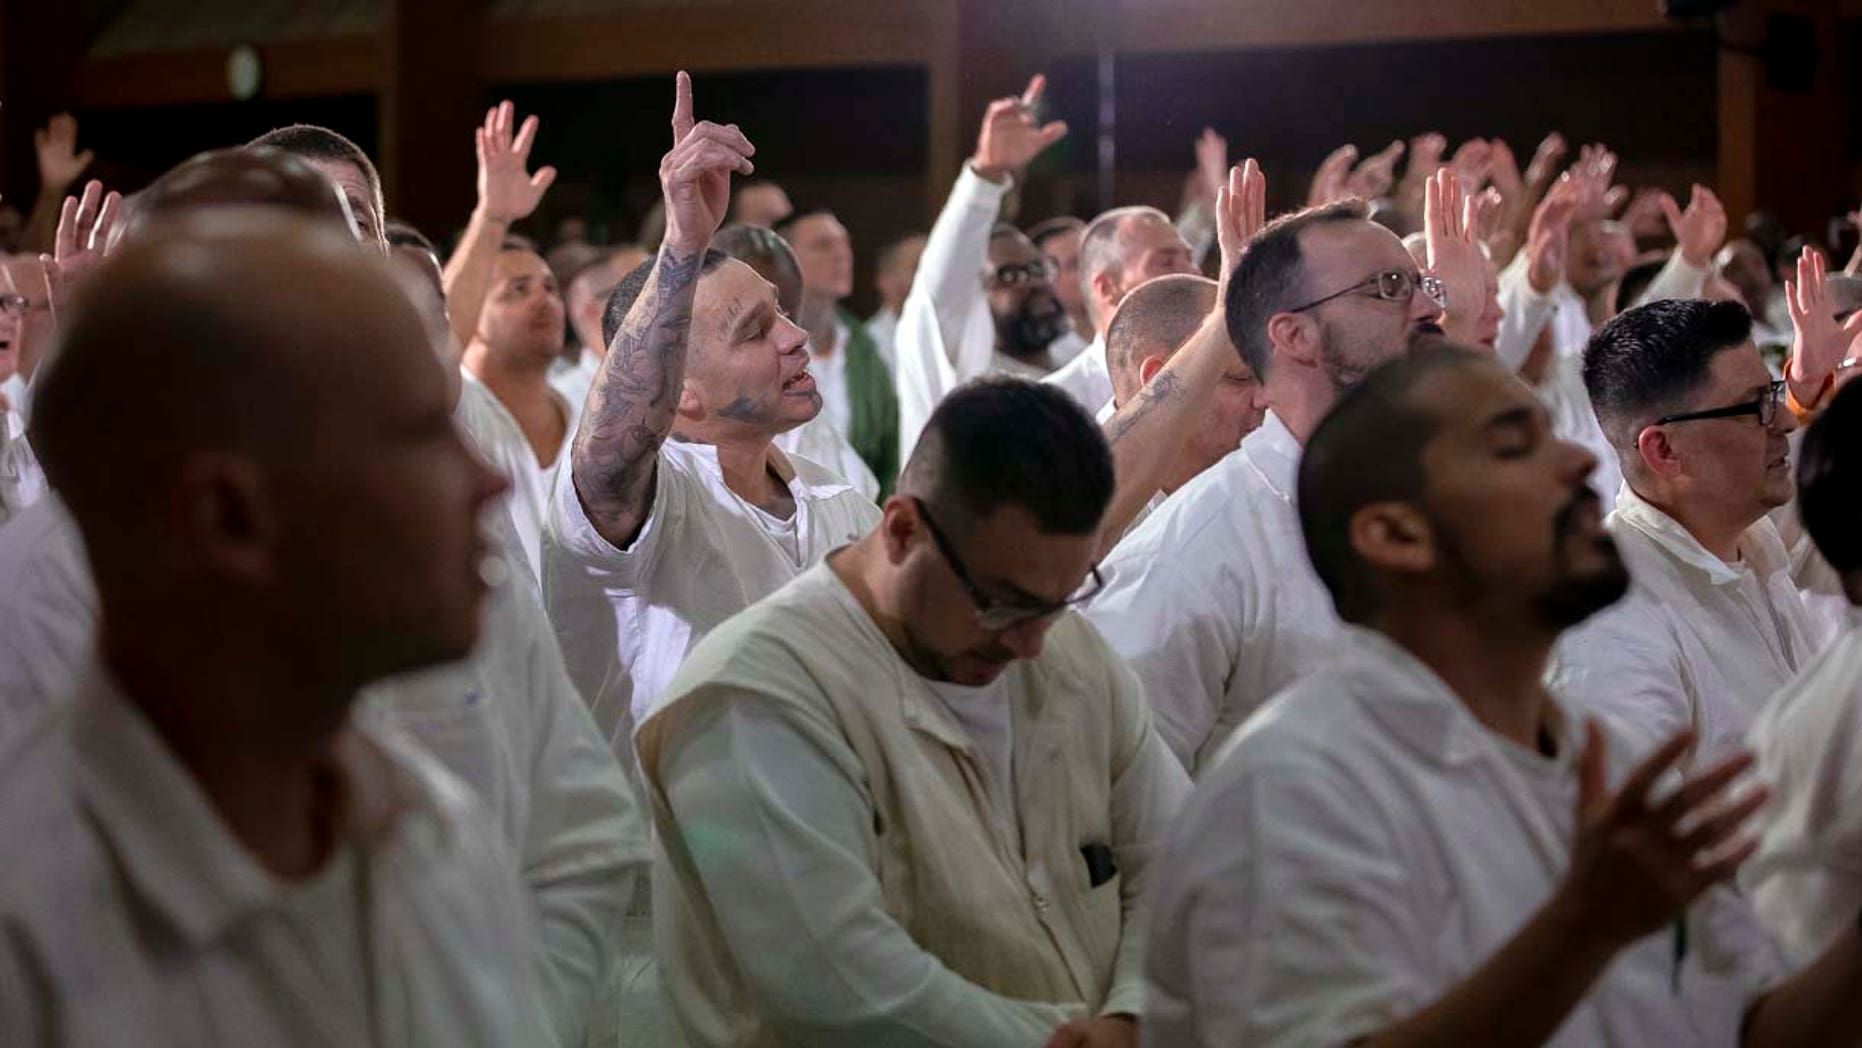 Inmates at the Coffield Unit, a maximum security prison in Anderson County, Texas, worship during a church service. They are part of the newest campus for Gateway Church of Dallas, Texas.